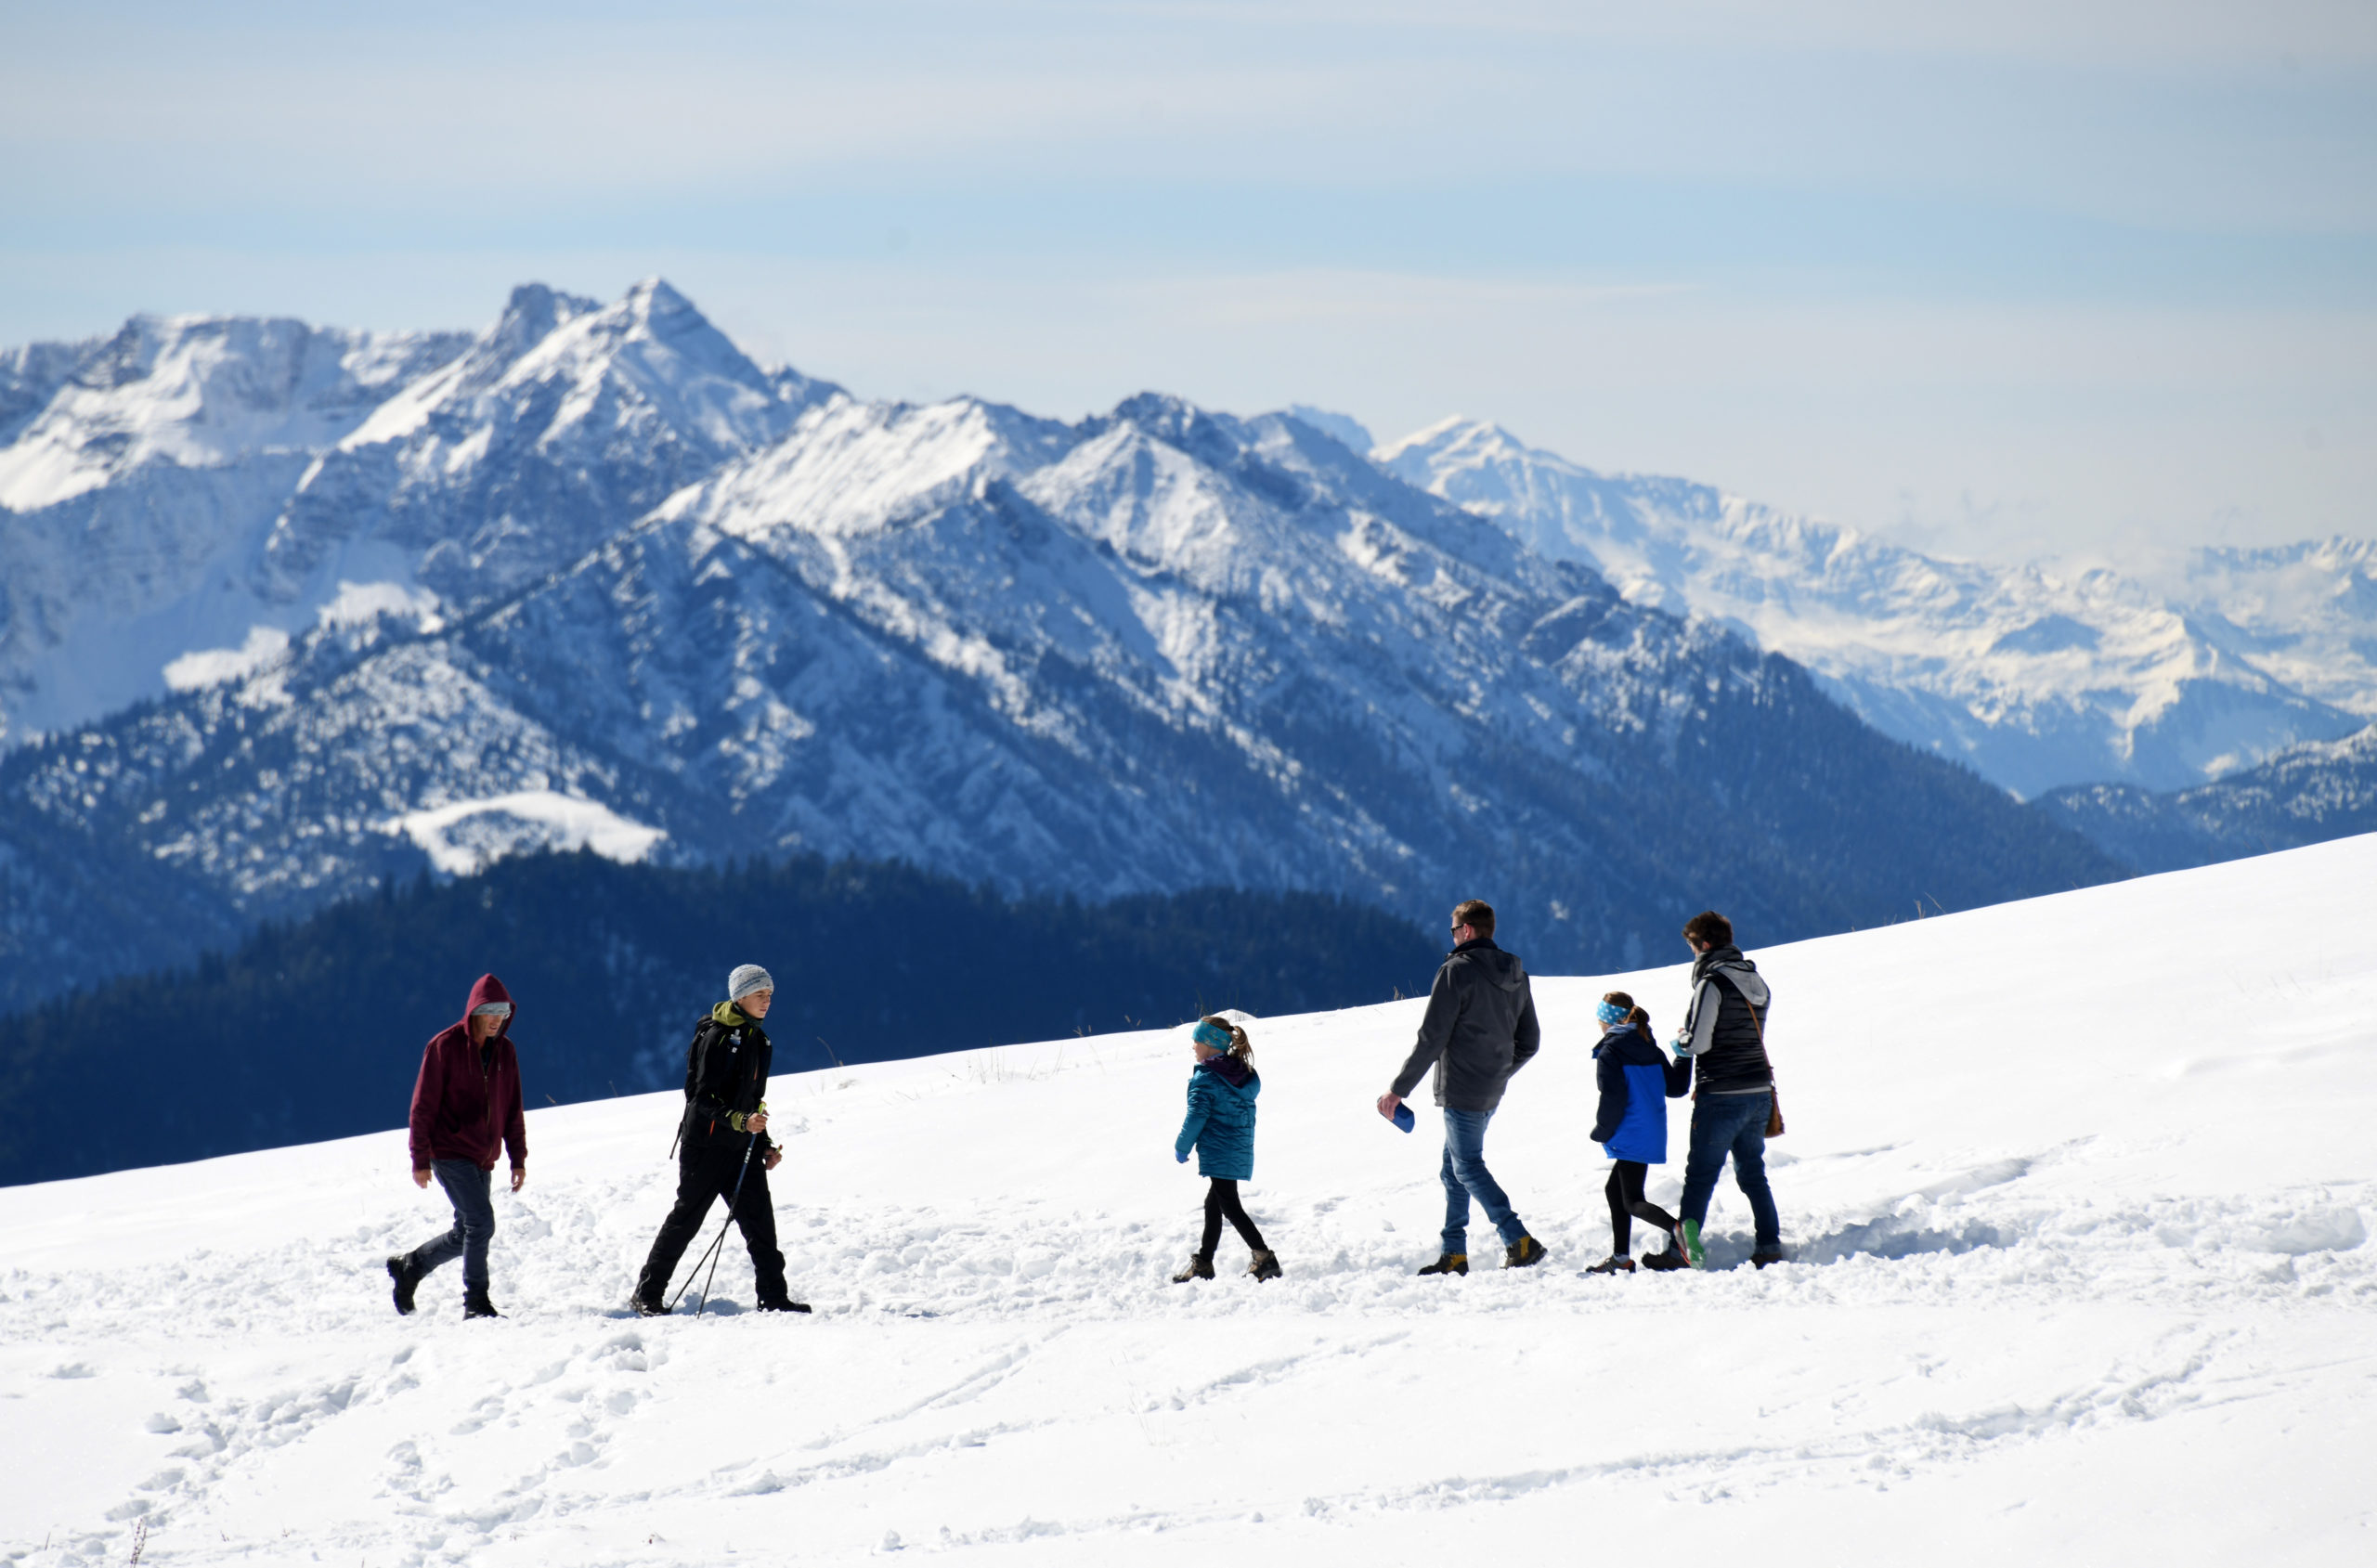 Hikers walk along a snow-covered hiking trail